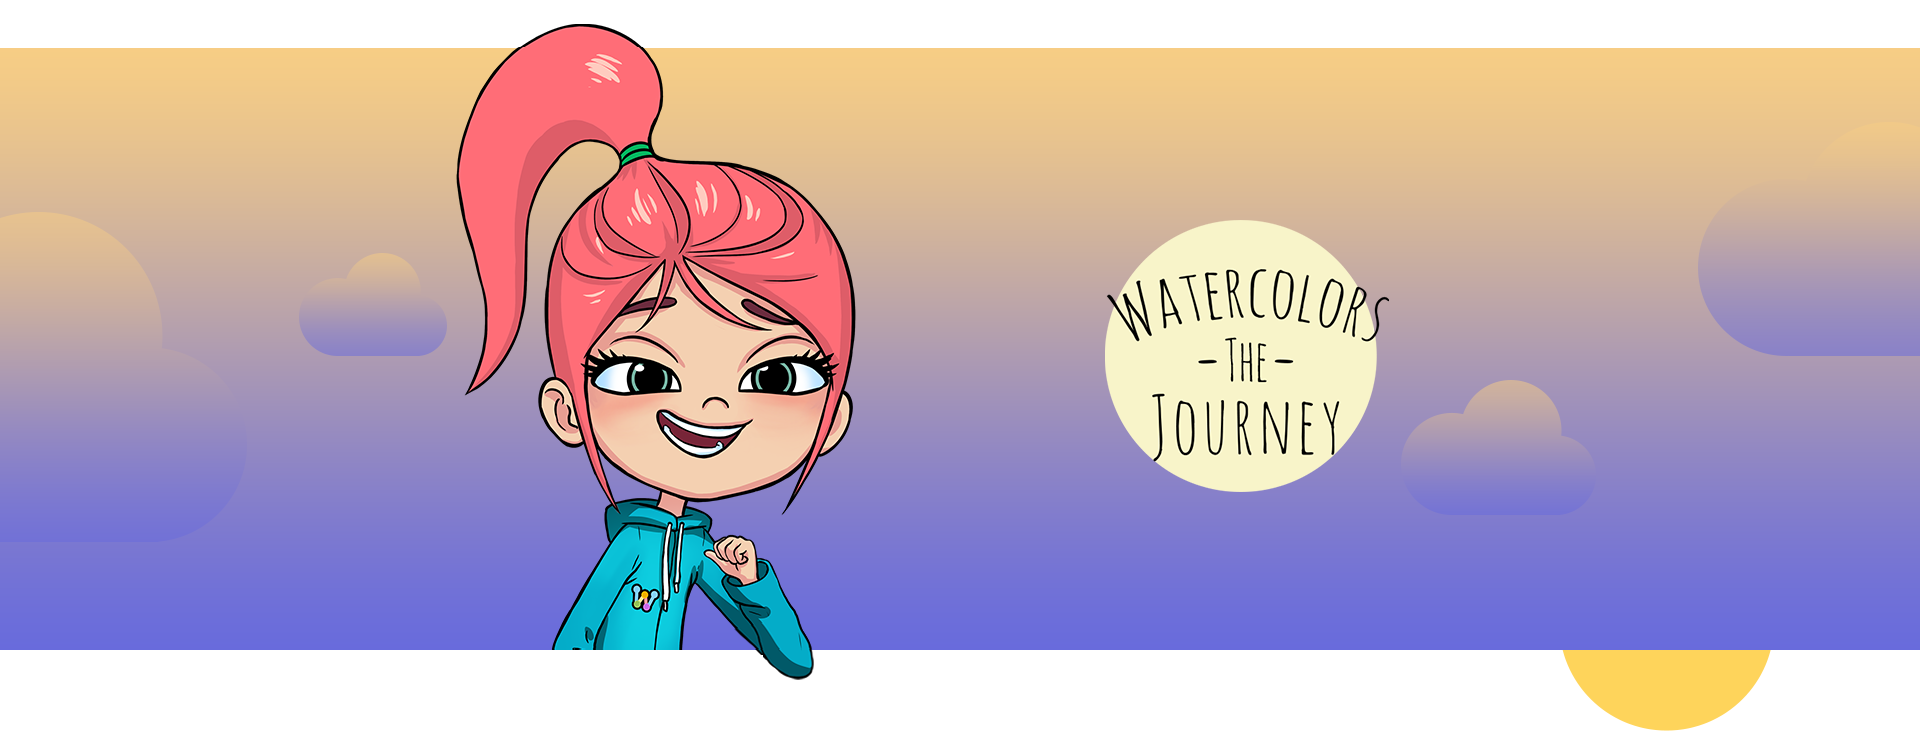 Watercolors the Journey